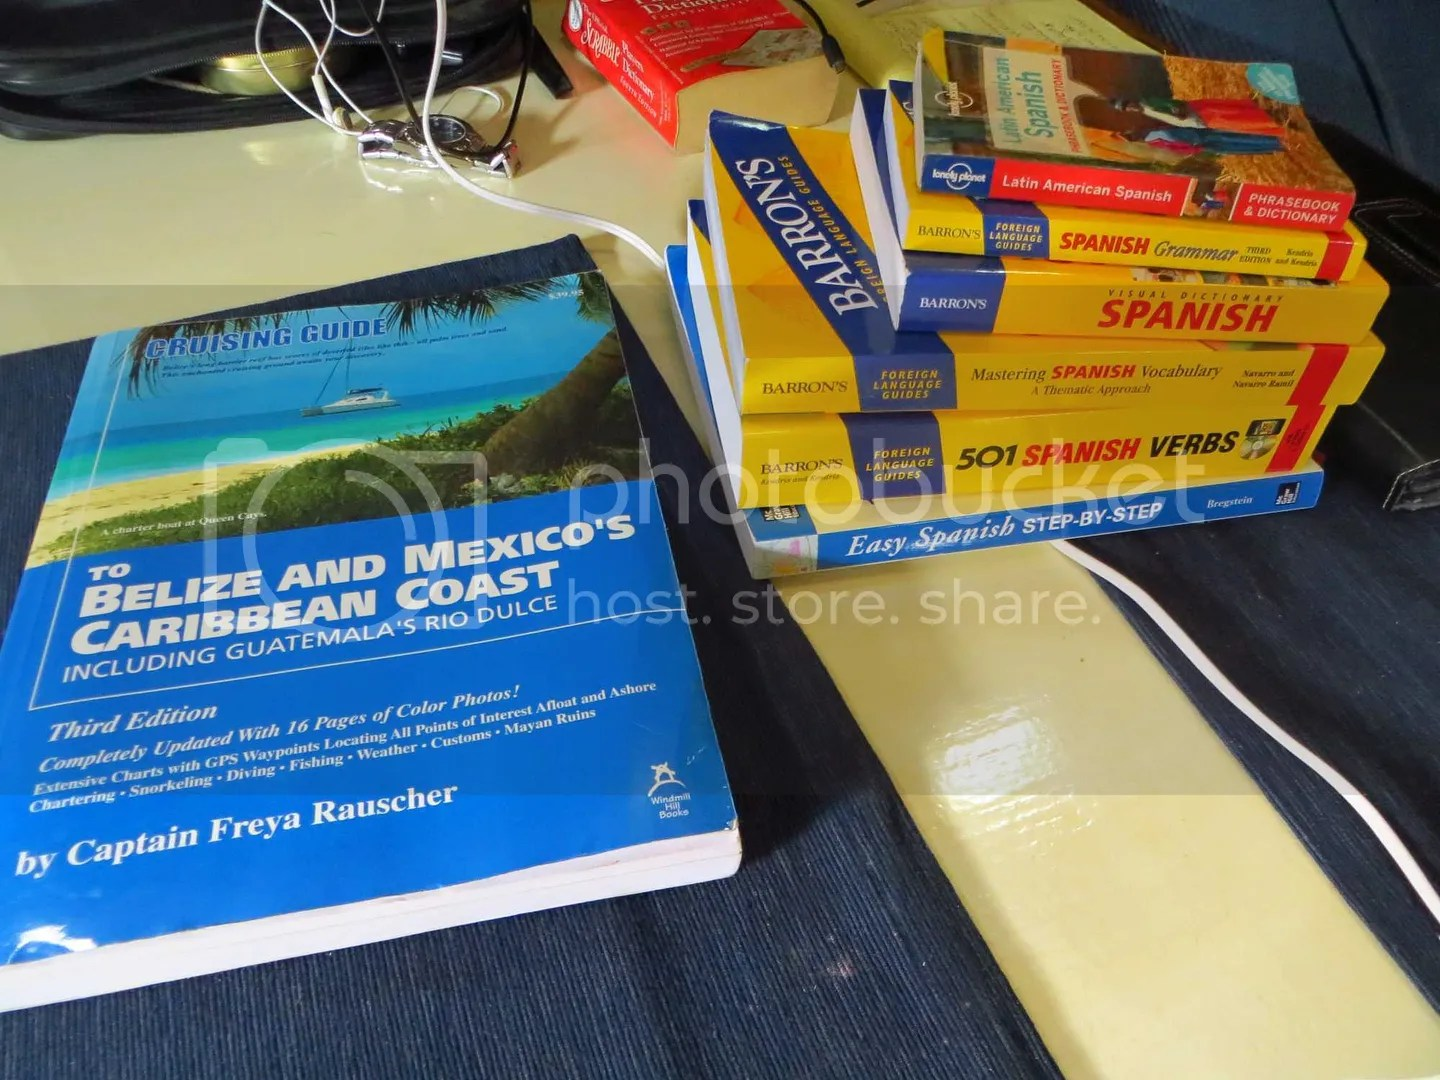 Spanish Books on the table